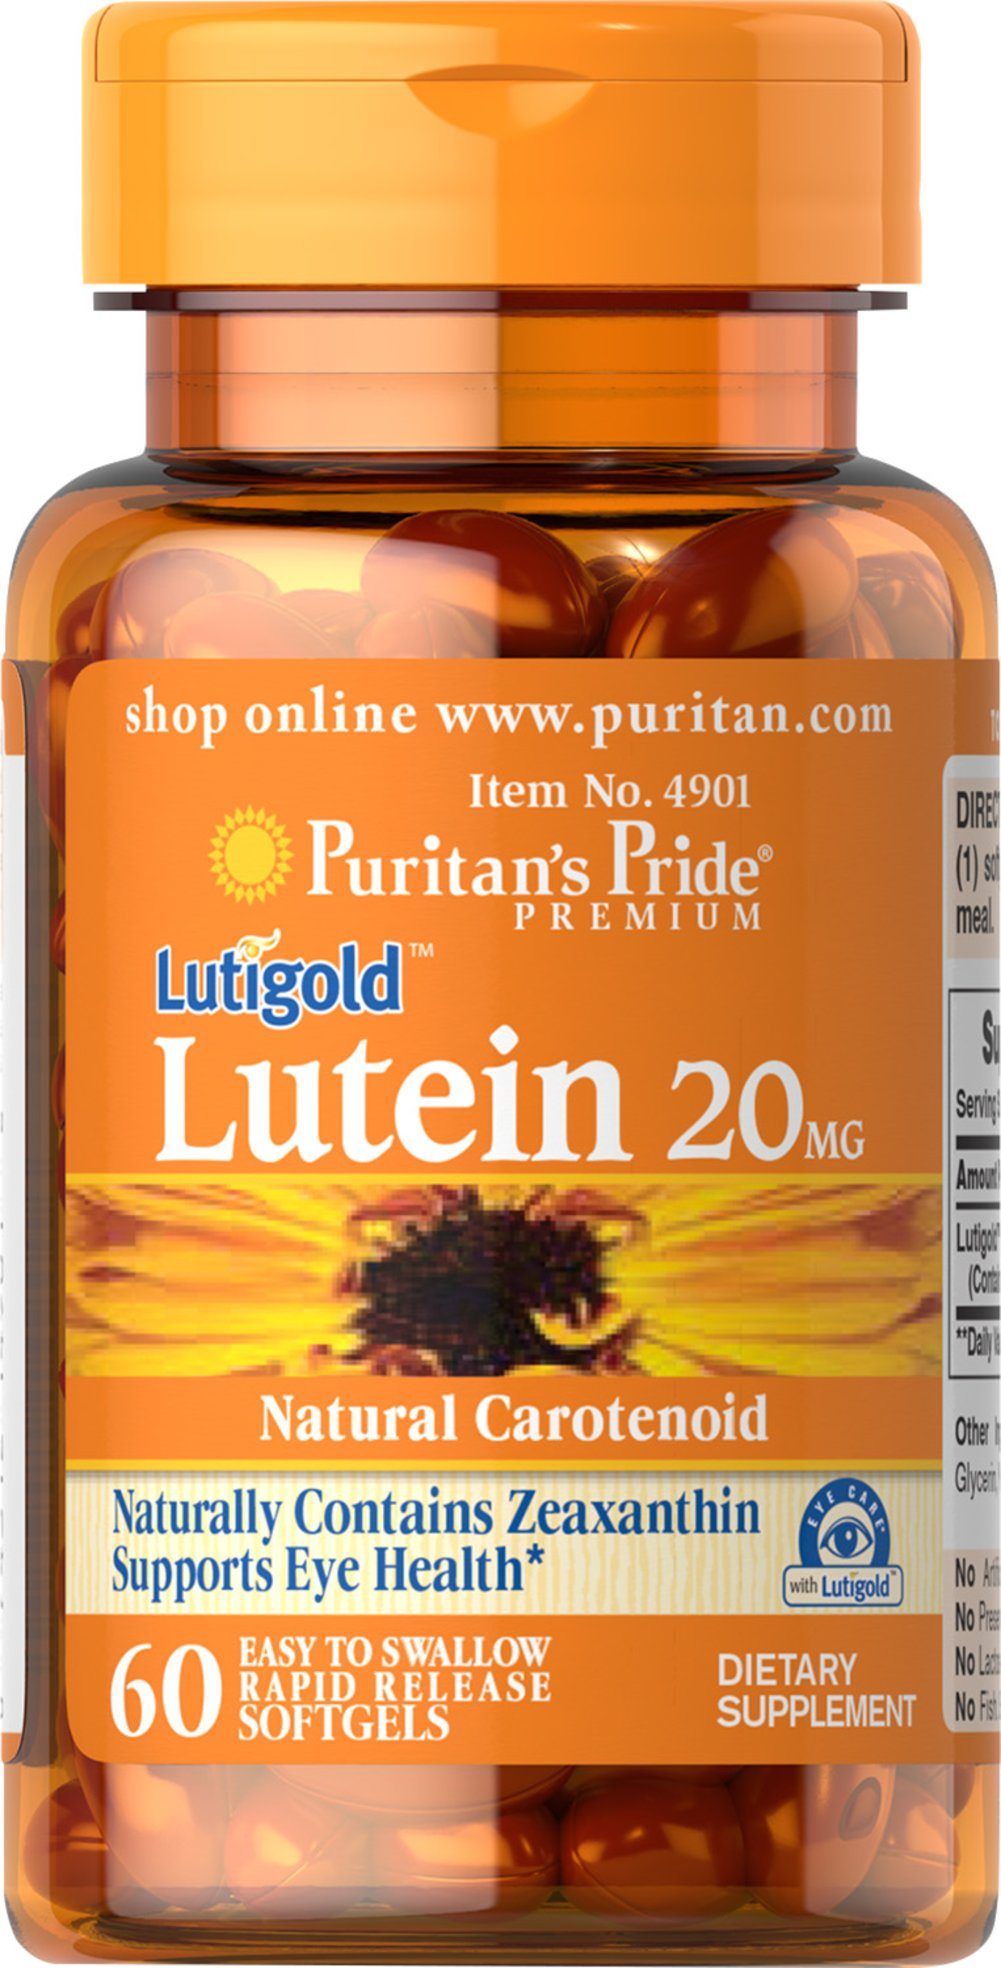 Lutein 20 mg with Zeaxanthin <p>Like other parts of the body, the eyes can be affected by the stresses of time.   Lutein helps to improve vision in low contrast situations, which is essential for night driving.** Lutein Lutigold™ plays a role in the maintenance of eye health and is the principle Carotenoid found in the central area of the retina called the macula.** Carotenoids are fat-soluble antioxidants found in fruits, vegetables, marigolds and other plants.**</p&g